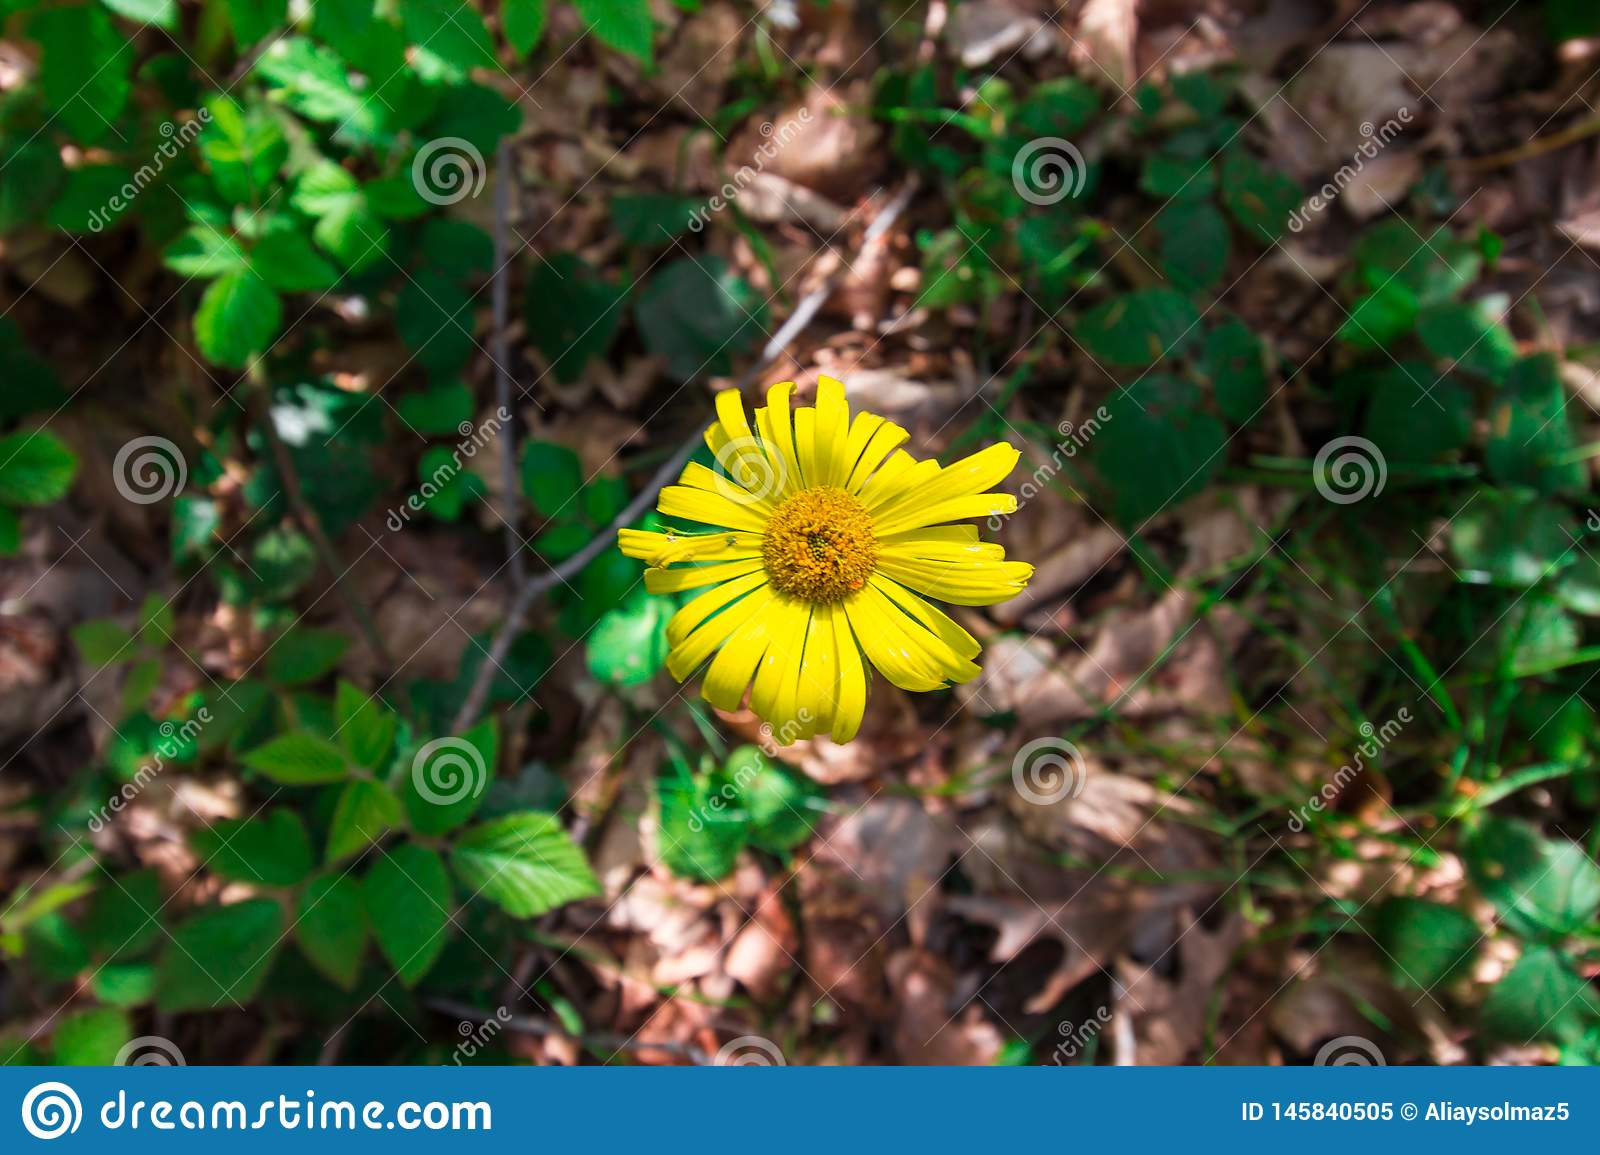 Spring Time For Turkey, April 2019, Yellow Flower, Belgrad Forest, Bright Day